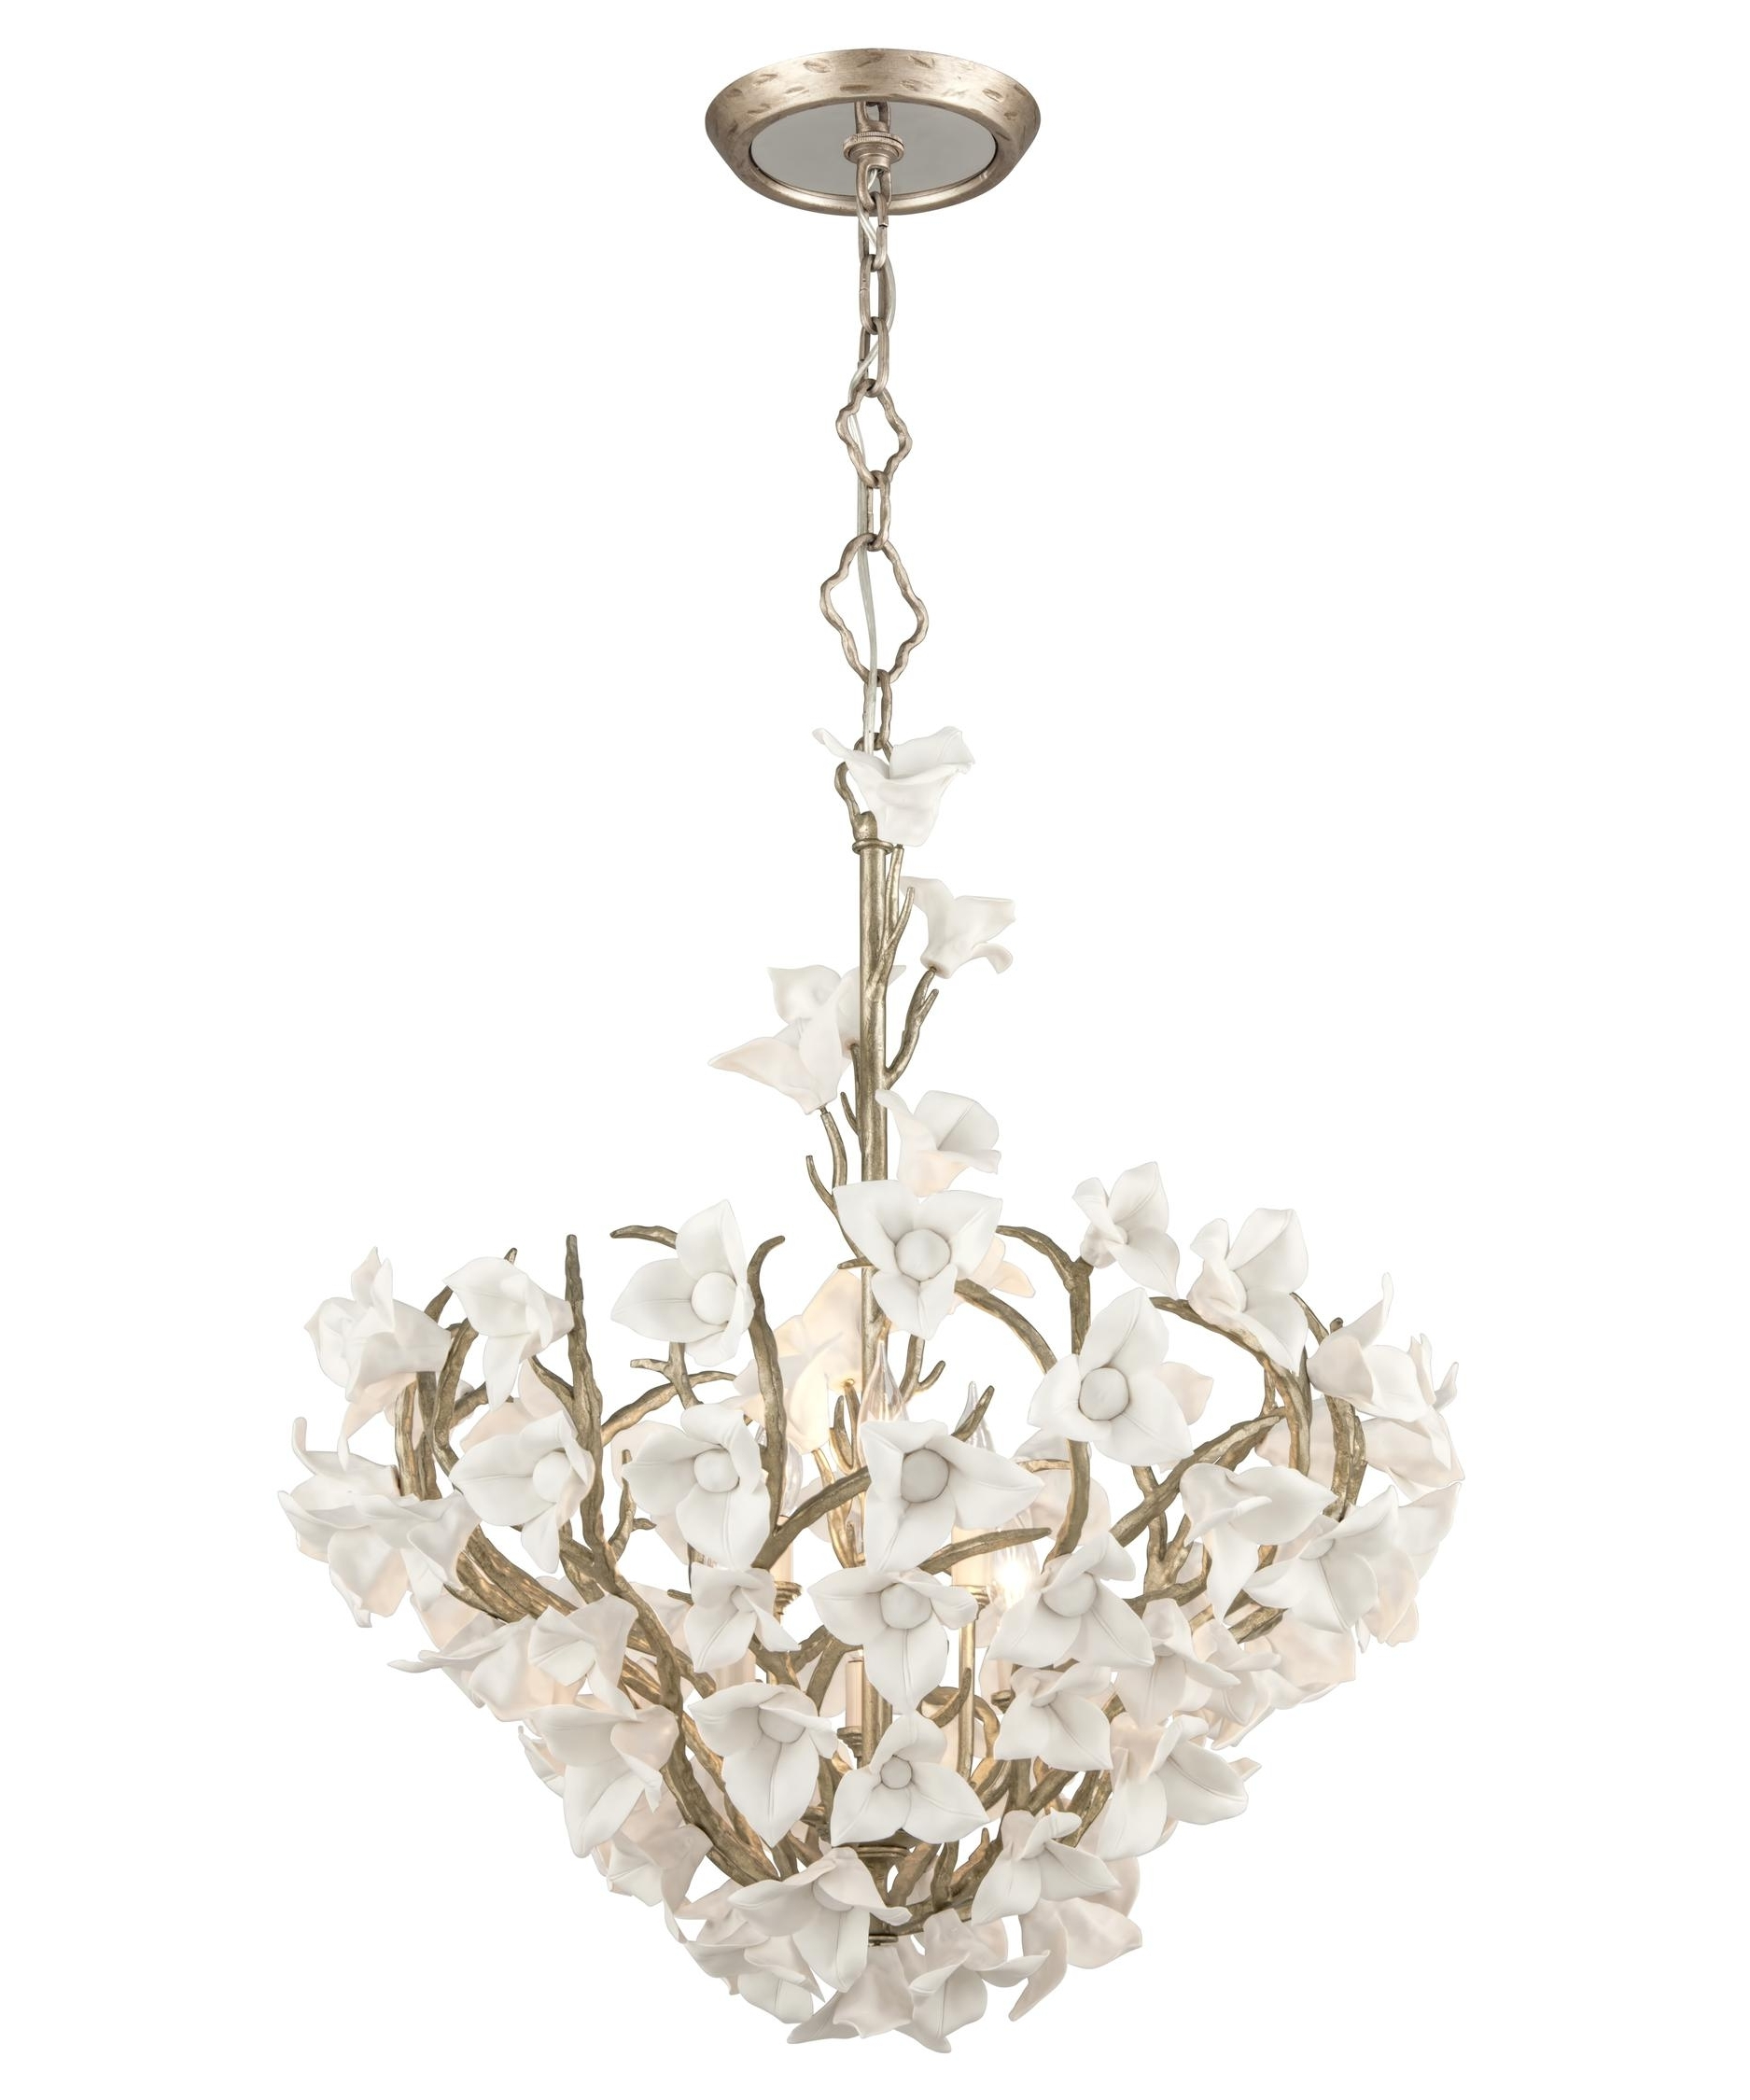 Trendy Lily Chandeliers Regarding Corbett Lighting 211 47 Lily 26 Inch Wide 6 Light Large Pendant (View 20 of 20)